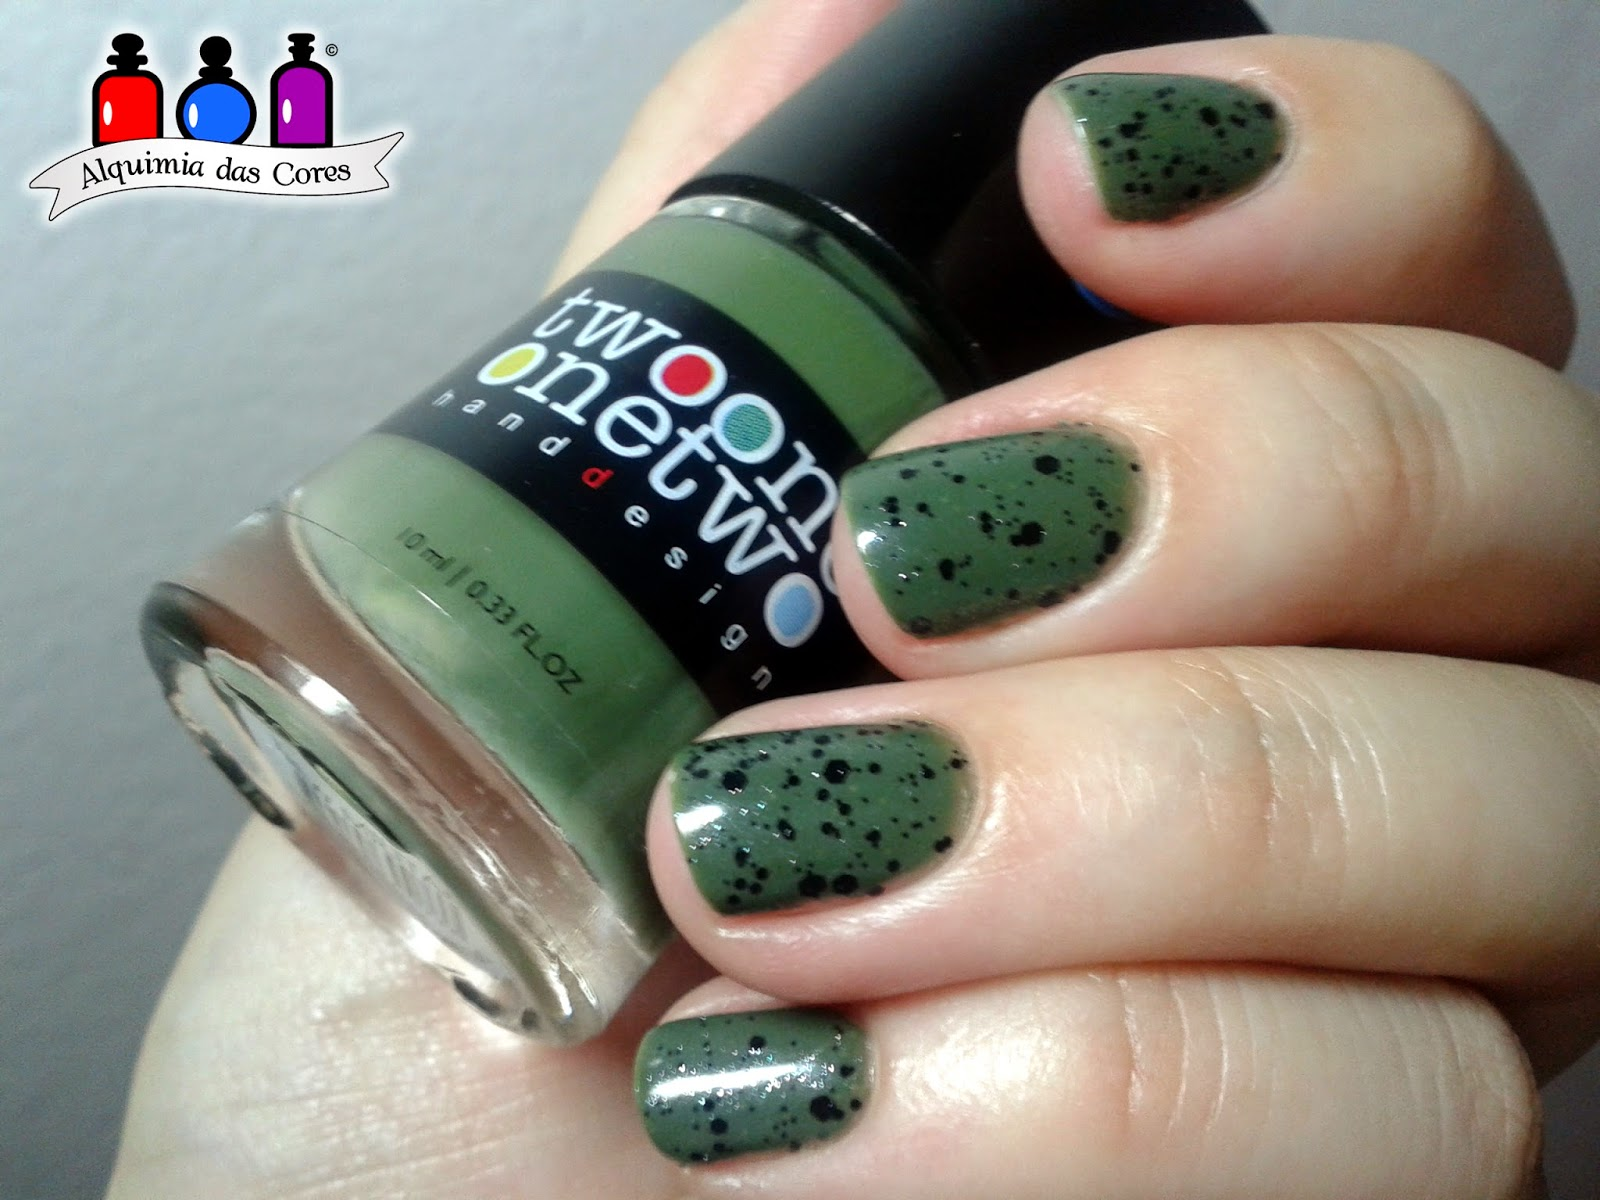 Two One One Two, New Militar, verde, verde militar, glitter, preto, Colorama, Cremoso, Pop Up, nail polish, esmalte, Caminie